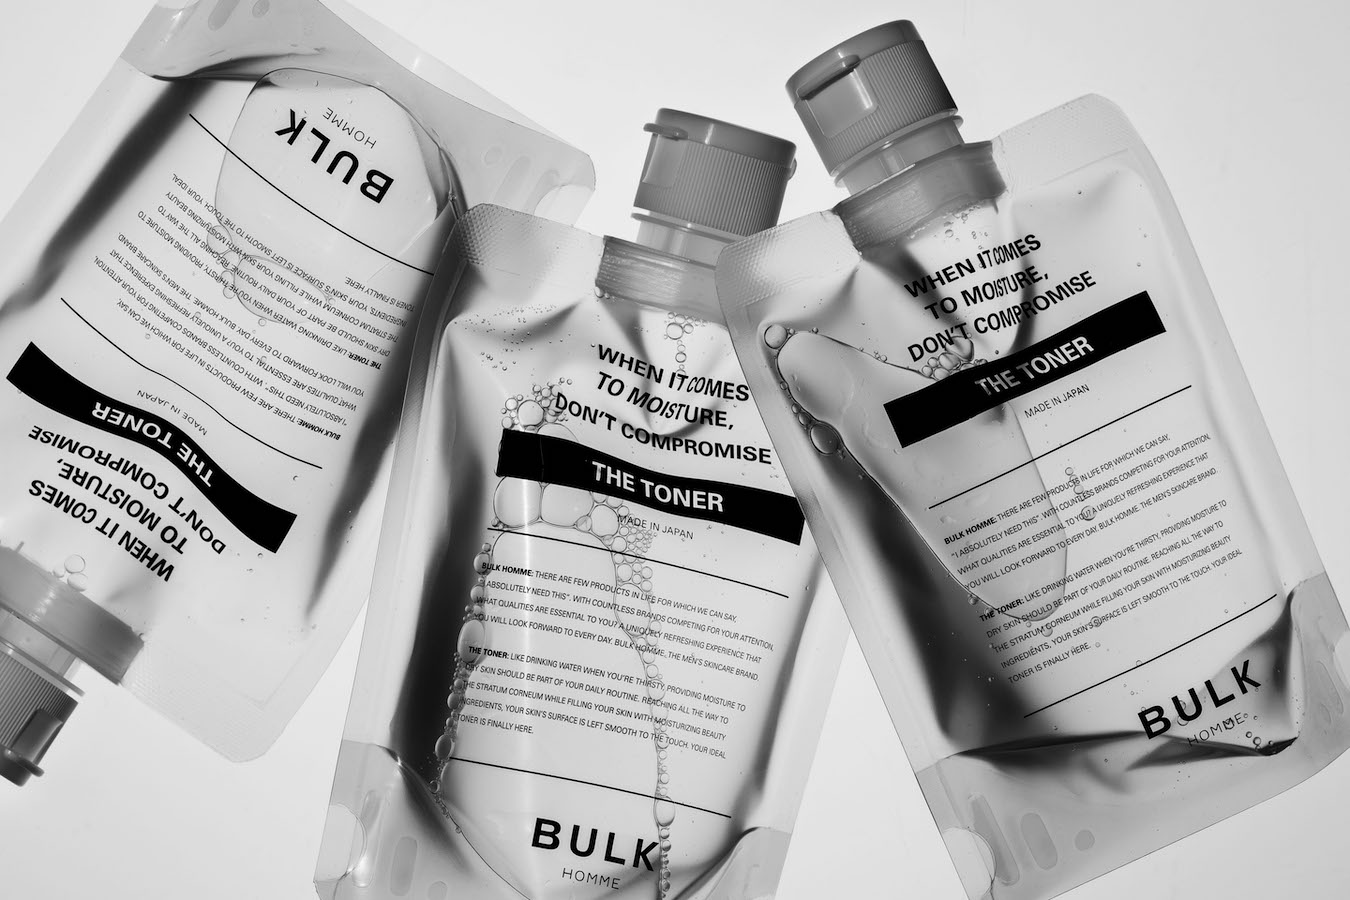 Bulk Homme launches in the UK today